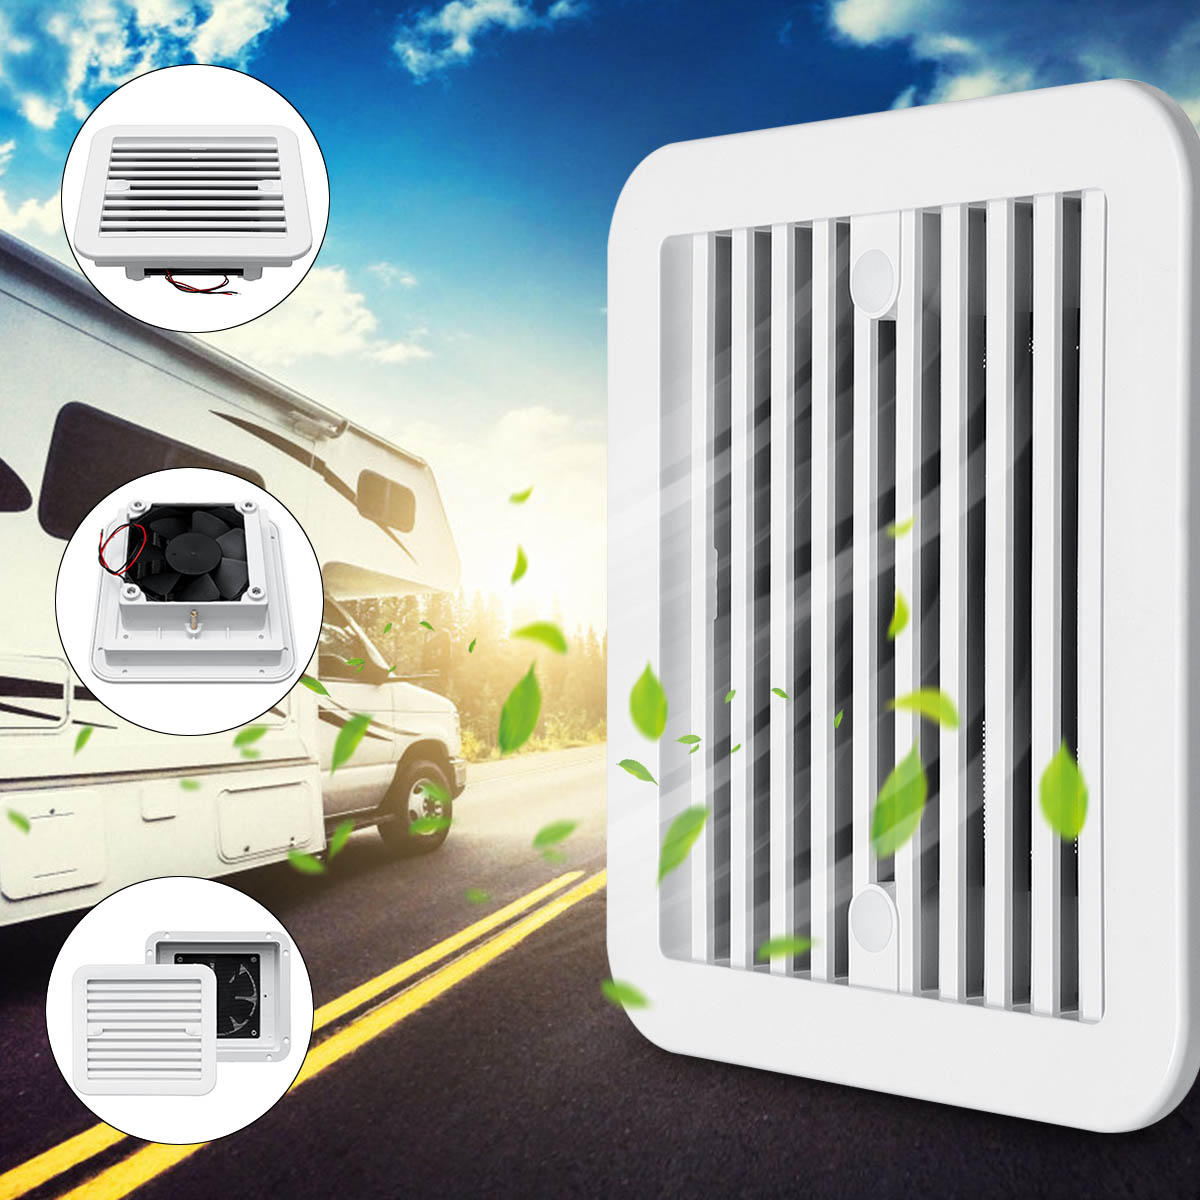 12V 3 Types Dust-proof White Ventilation Fan Caravan Motorhome Side Exhaust Air Outlet Vent For RV Motorhome Trailer Boat